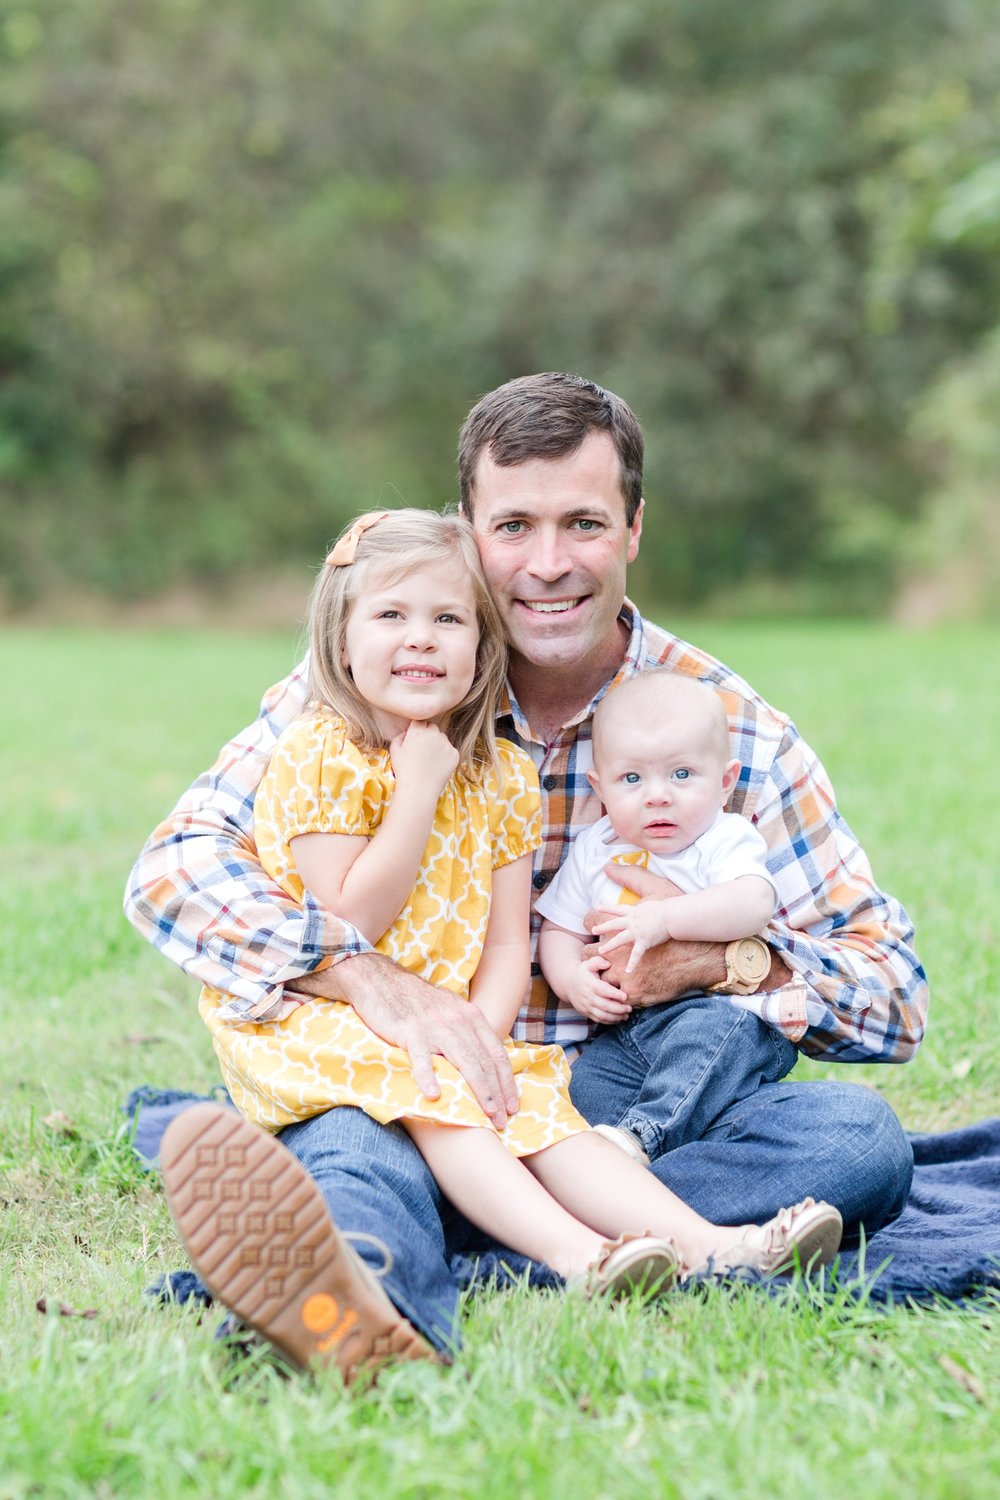 Ryan Family 2018-42_Cromwell-Valley-Park-Towson-Maryland-Family-Photographer-anna-grace-photography-photo.jpg